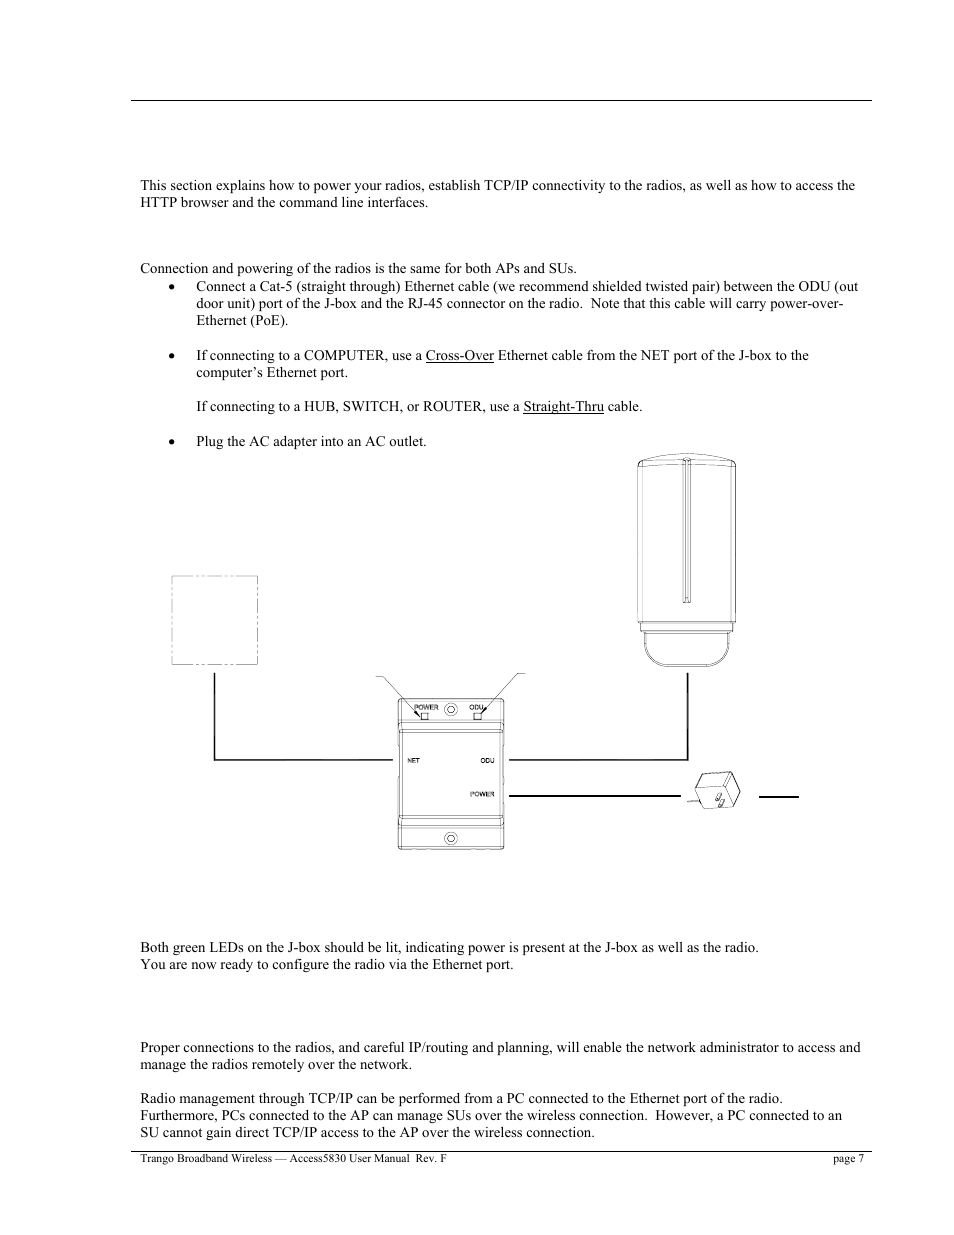 Connections And Power Opmode Radio Management Concepts Trango Black Cat 5 Wiring Diagram Box Broadband Access5830 User Manual Page 11 76